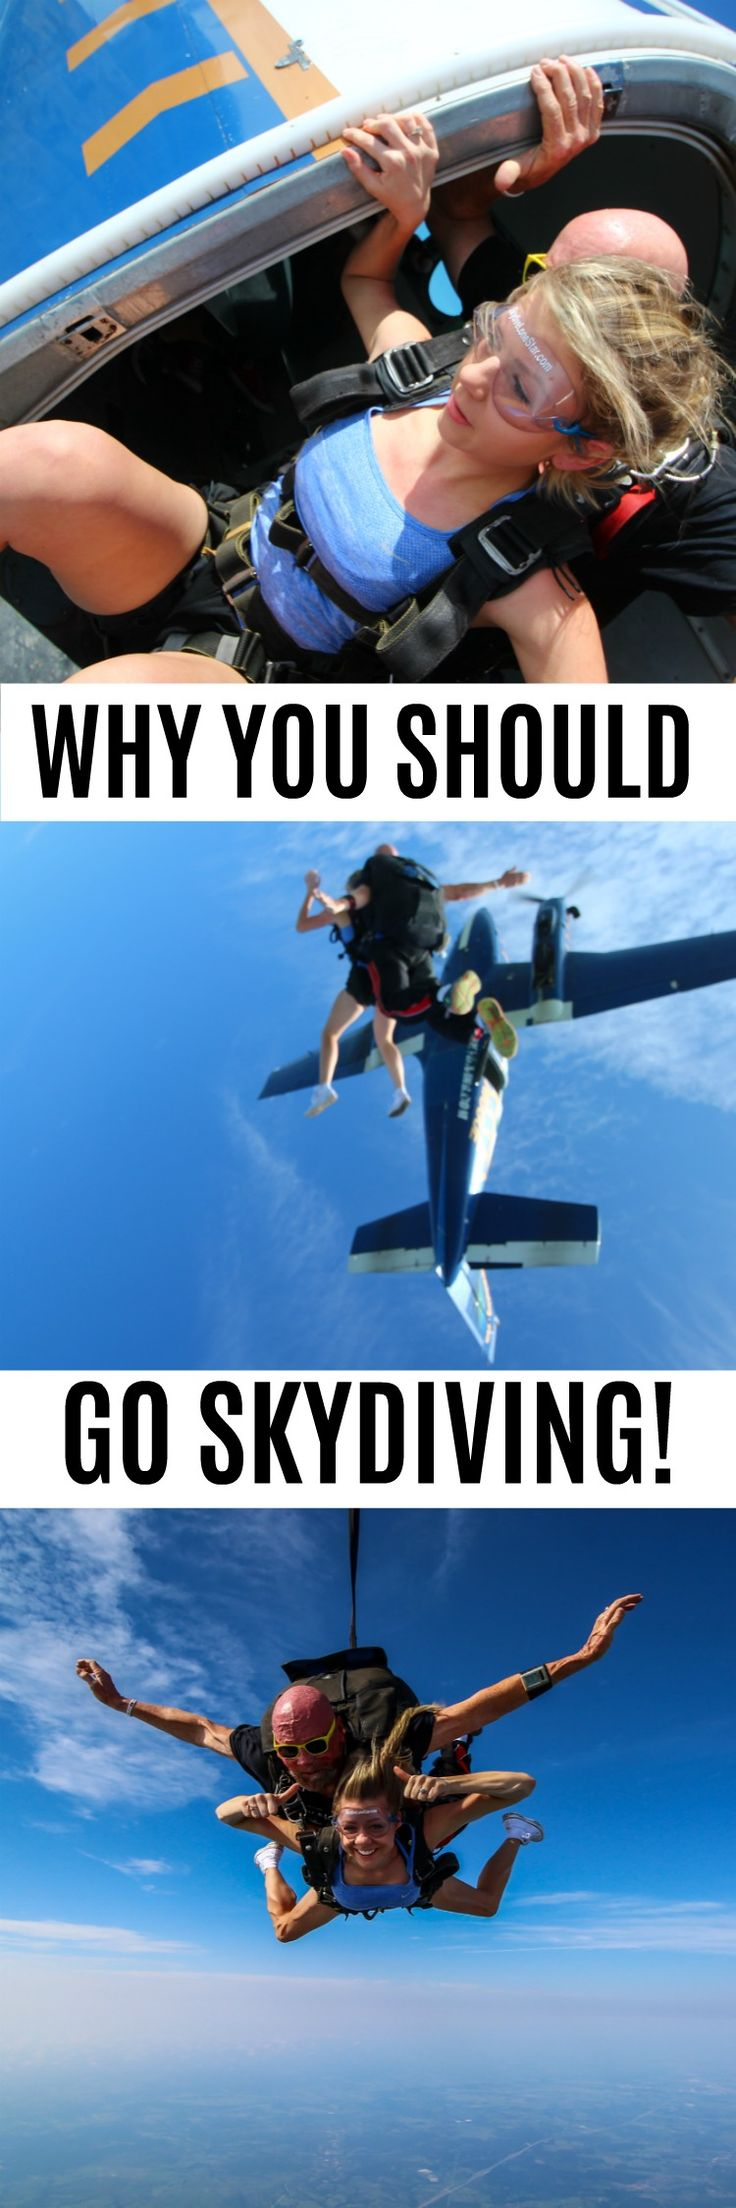 "experiencing skydiving and the lessons it The first lesson i learned about skydiving was on the ground alberto, my instructor and the man i would be connected to on this adventure, told me over and over again the same phrase: ""you are not a spectator, you are a student""."